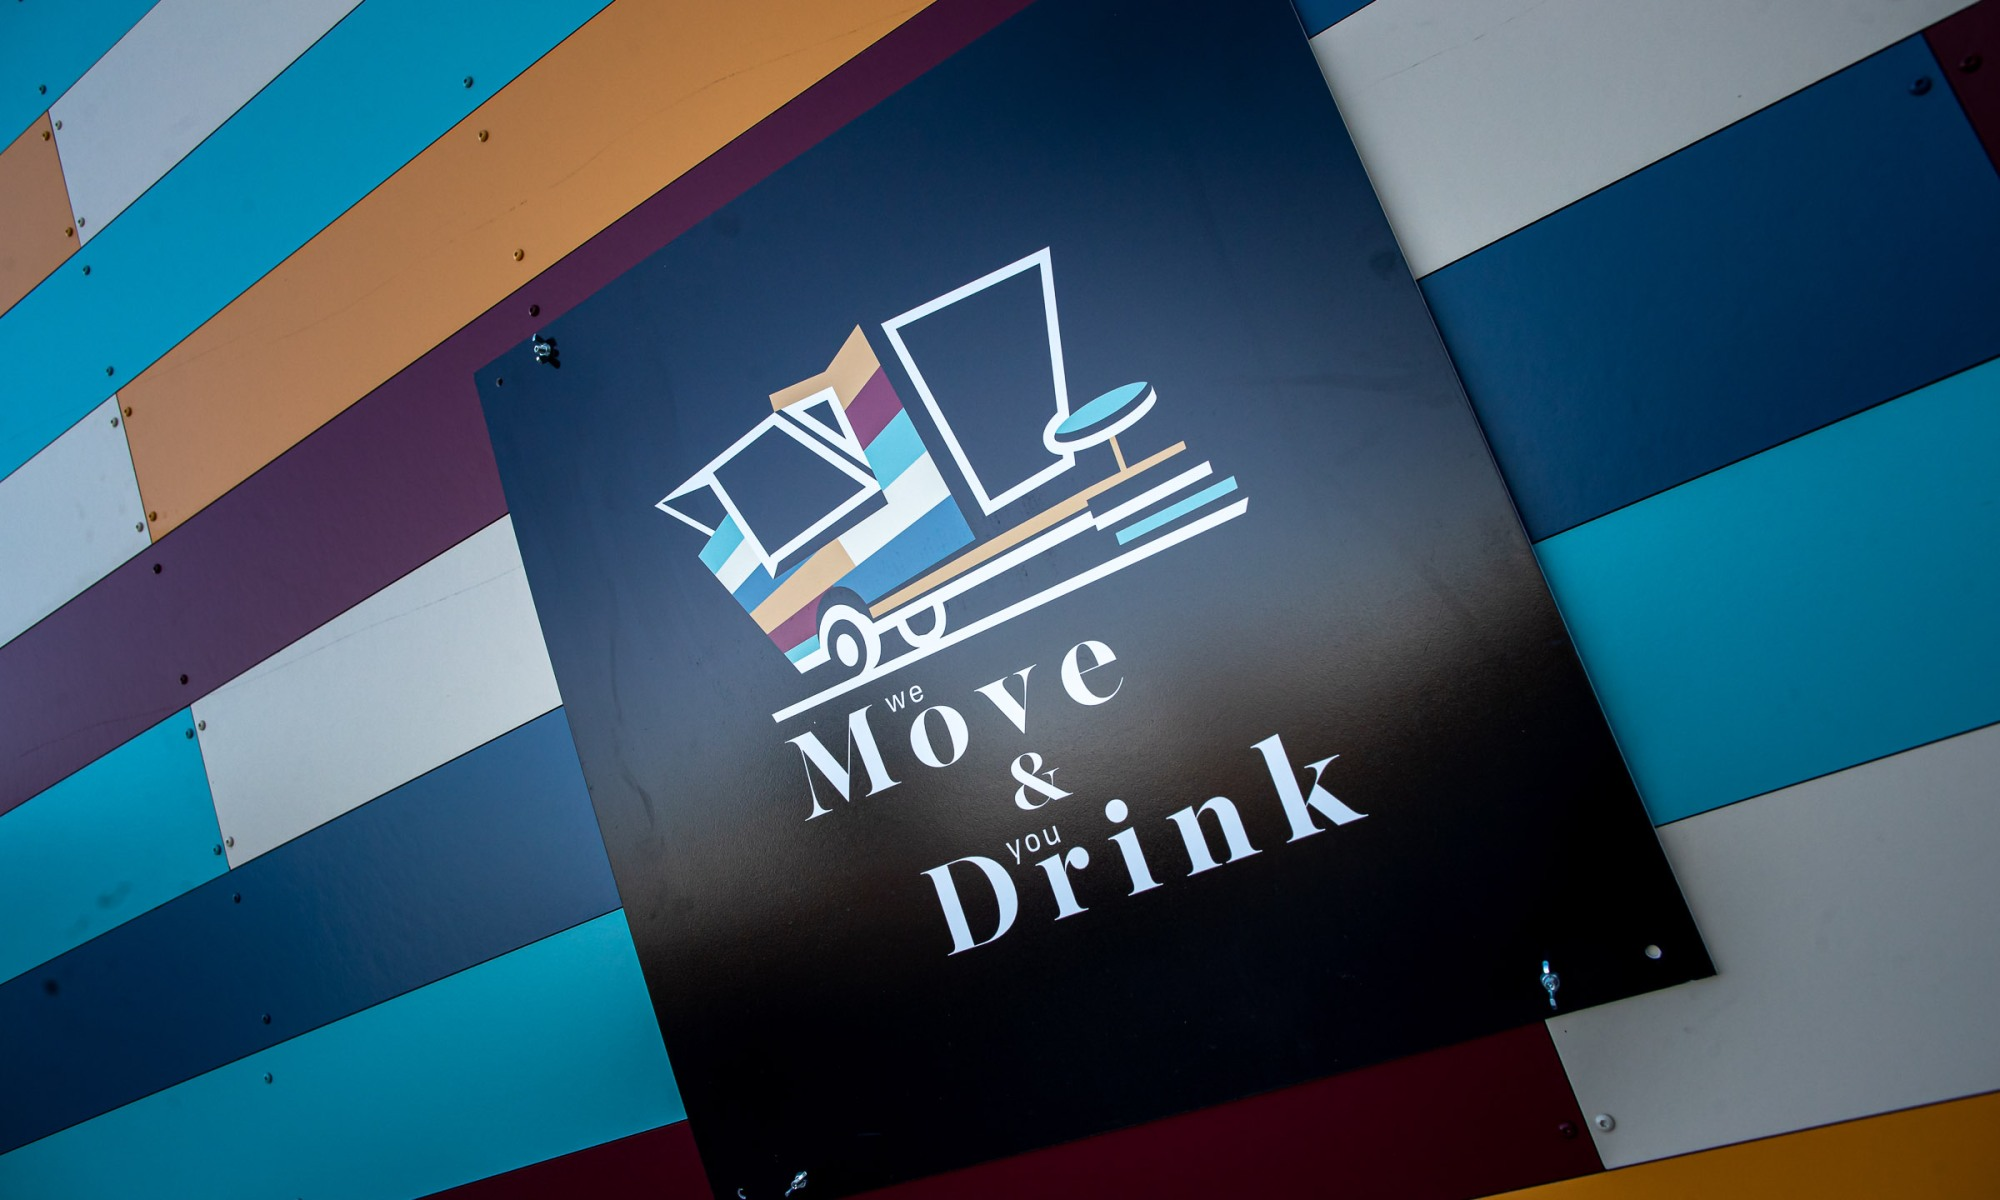 move and drink - bar - itinérant - foodtruck - truck - tiny - tinyhouse - tinyhome - homebar - party - tinybar - event - sur mesure - horeca - professionnel - boisson - cocktail - cocktails - expérience